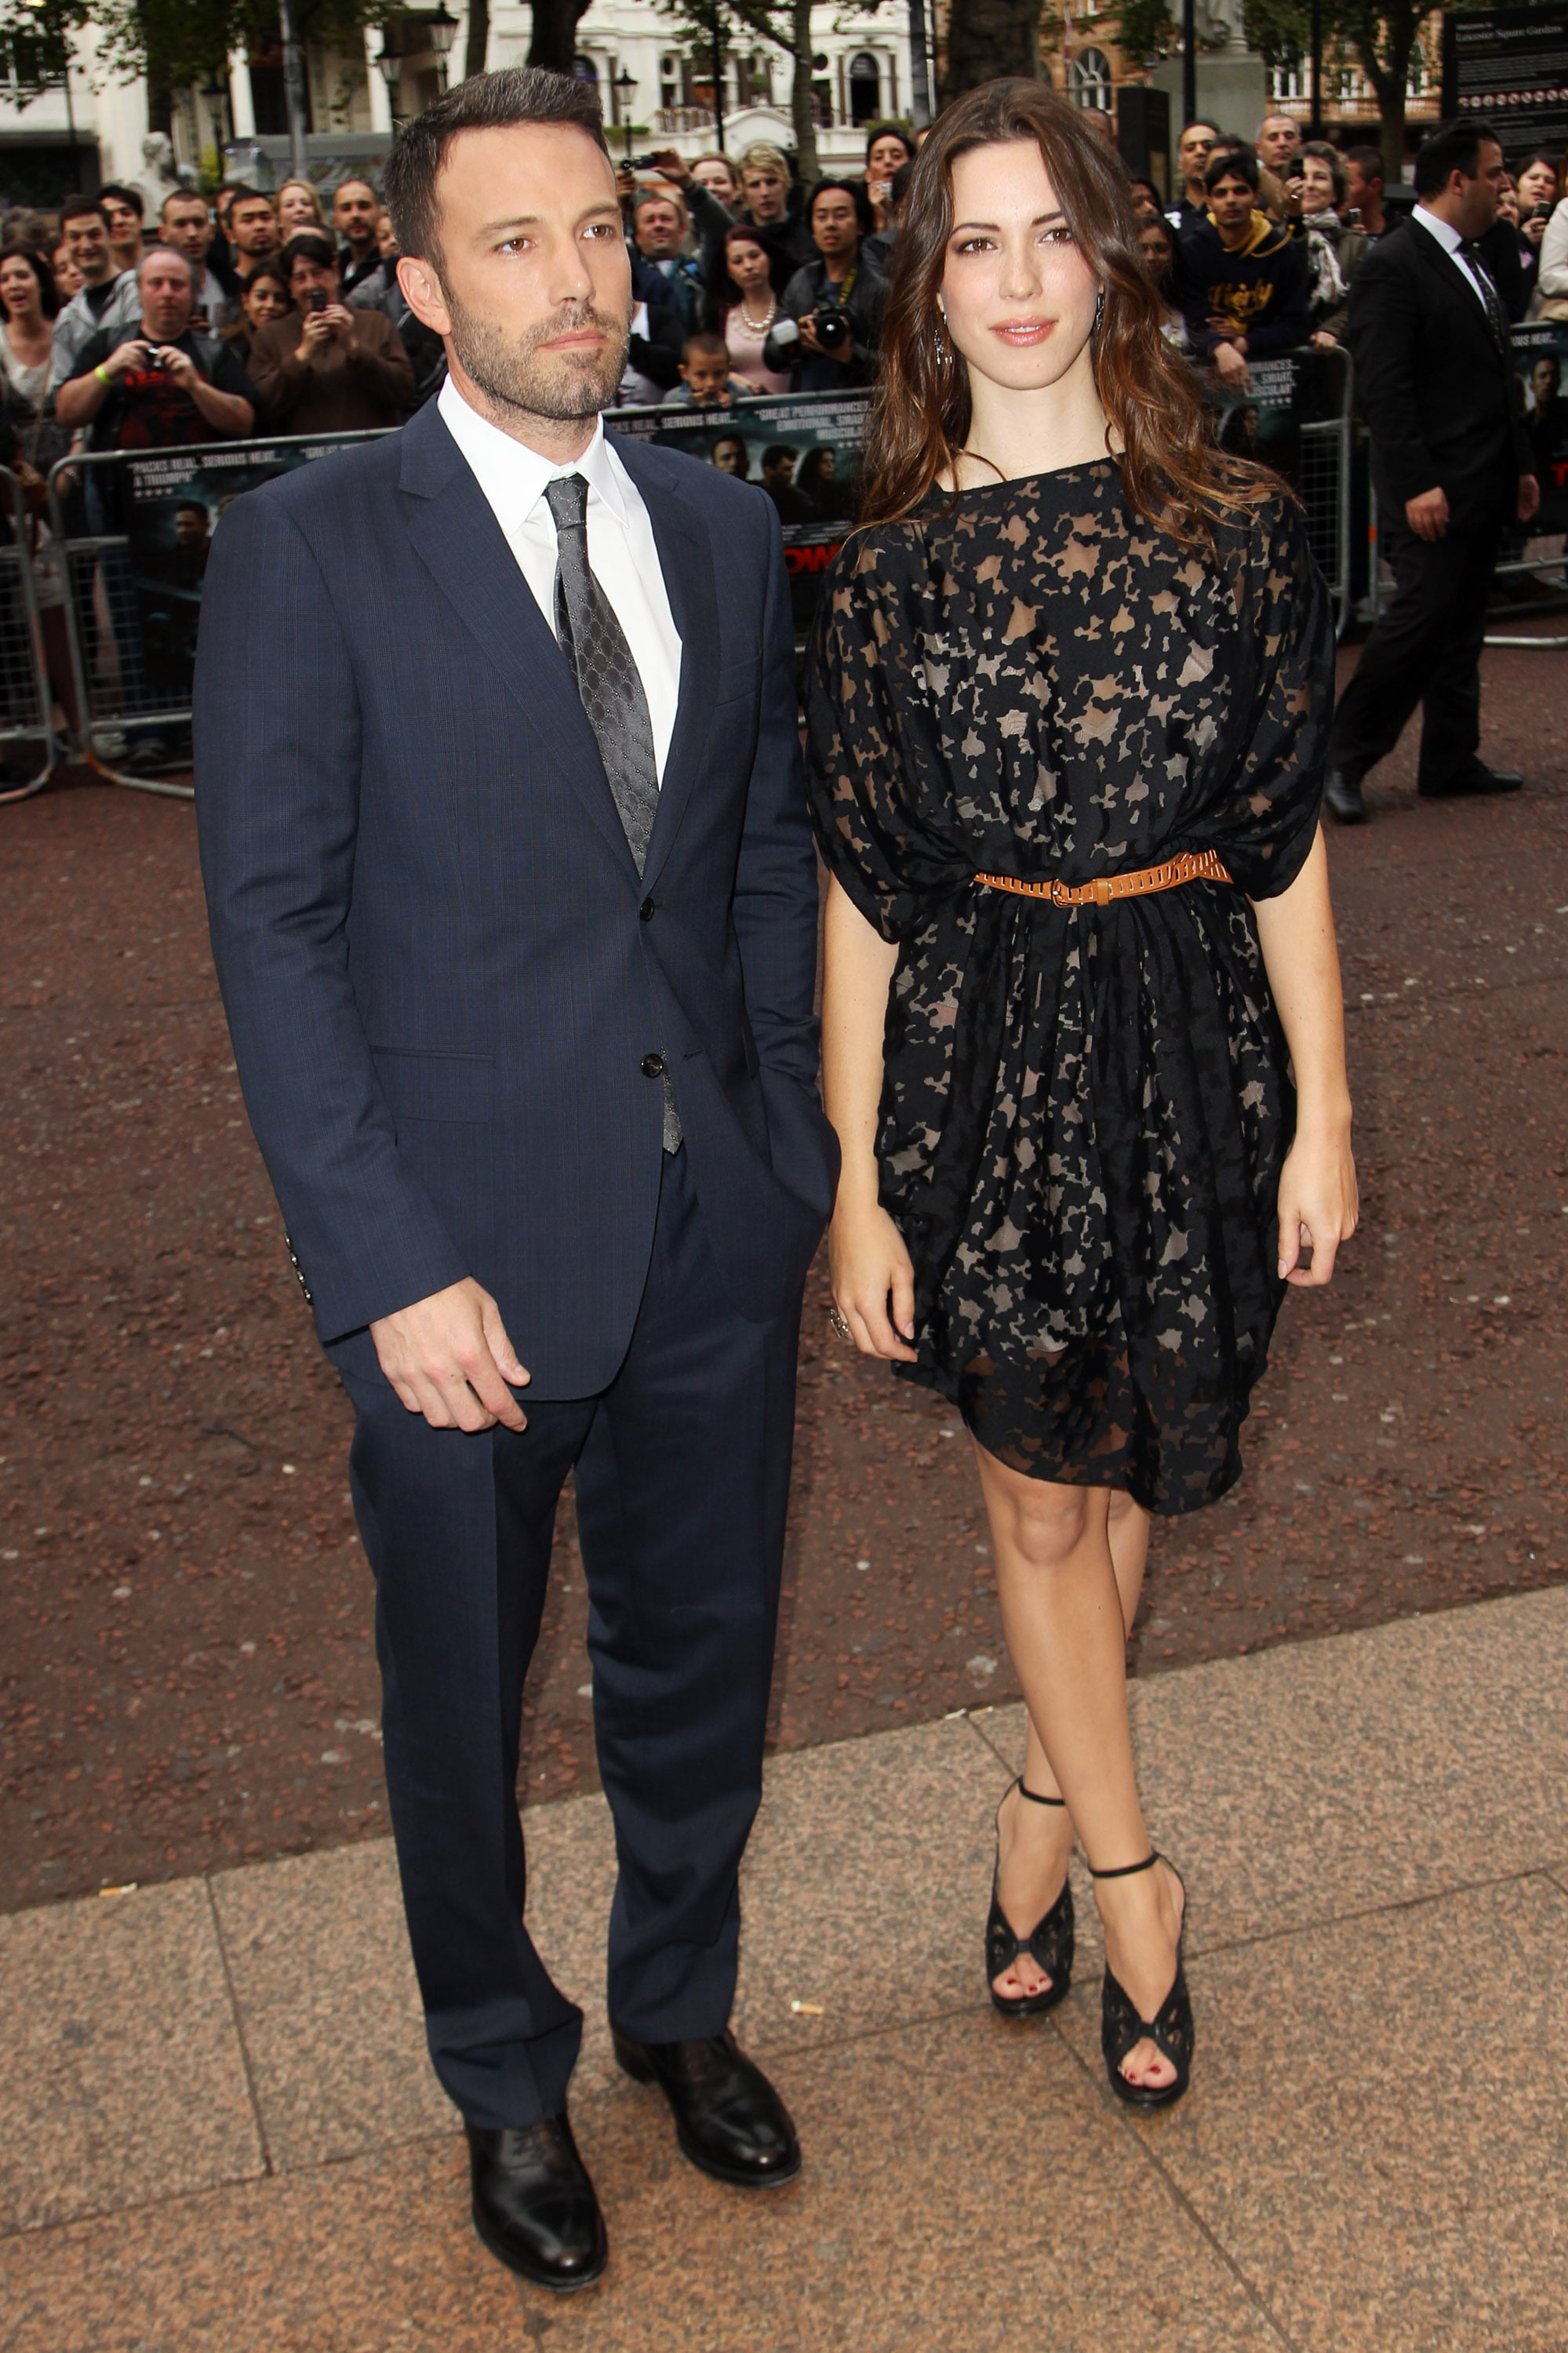 West End Auto >> Ben Affleck and Rebecca Hall at The Town UK Premiere in London | POPSUGAR Celebrity Australia